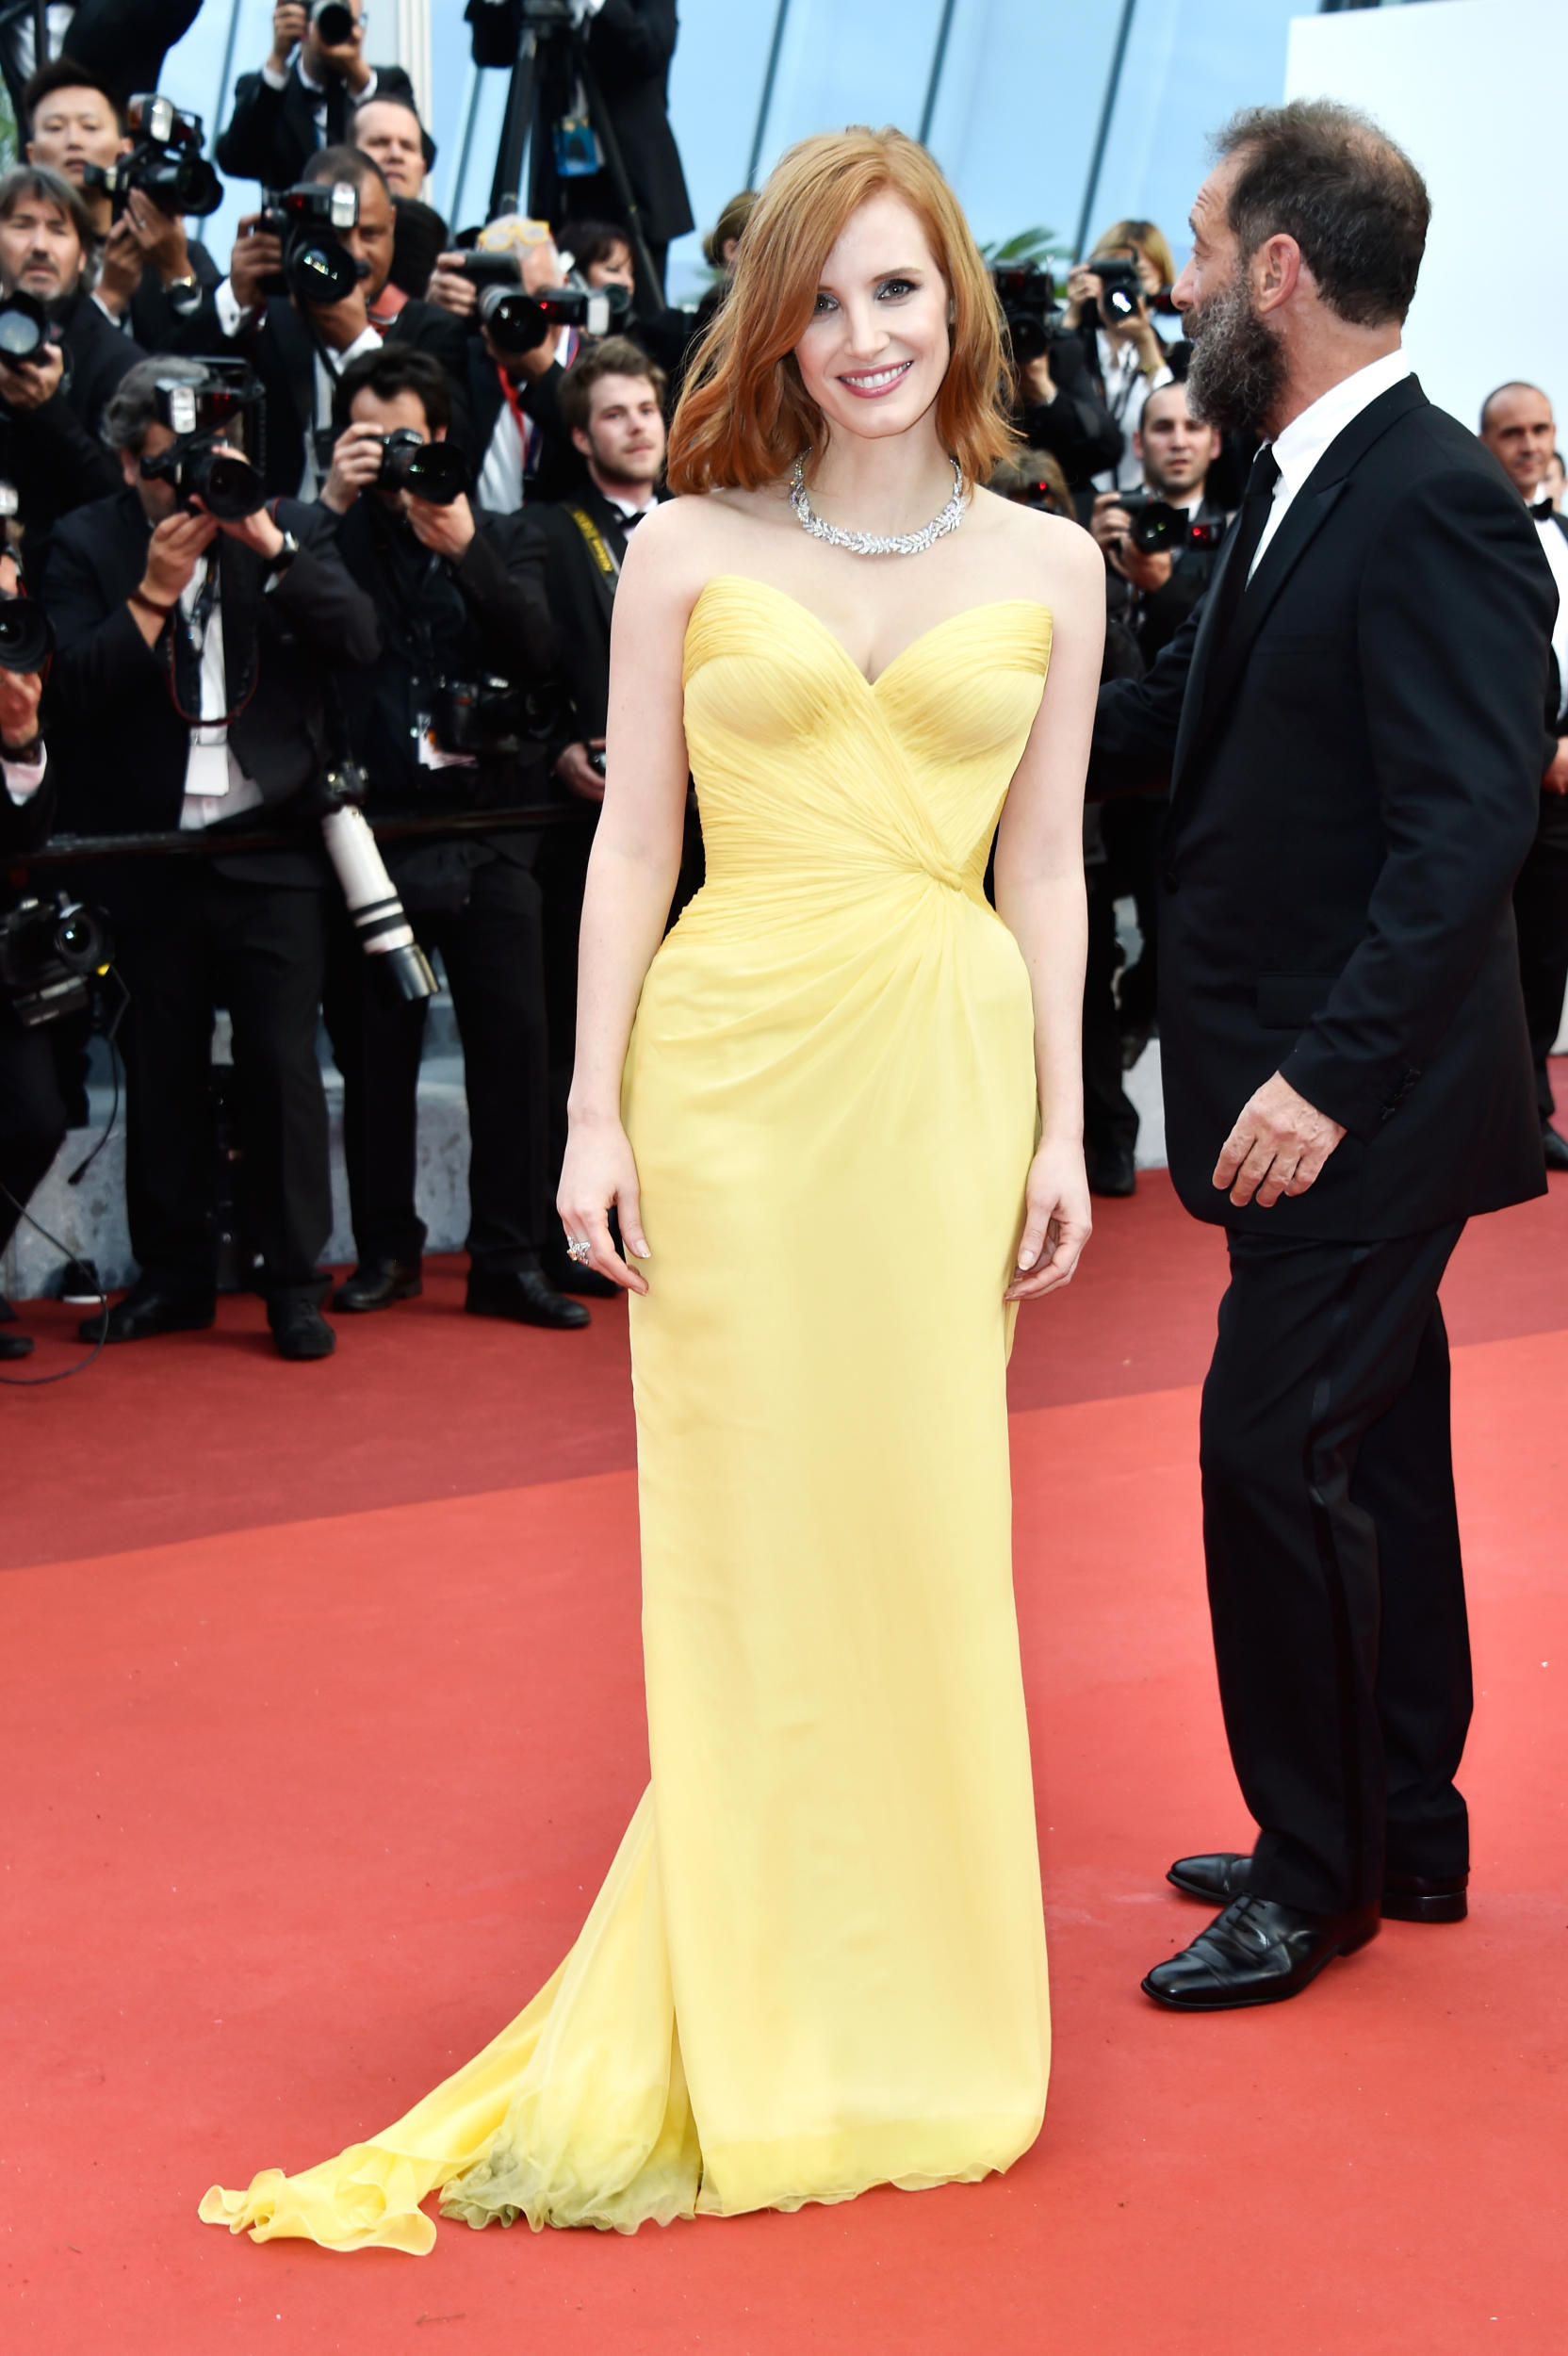 Jessica Chastain nailed this pale yellow ?????? gown